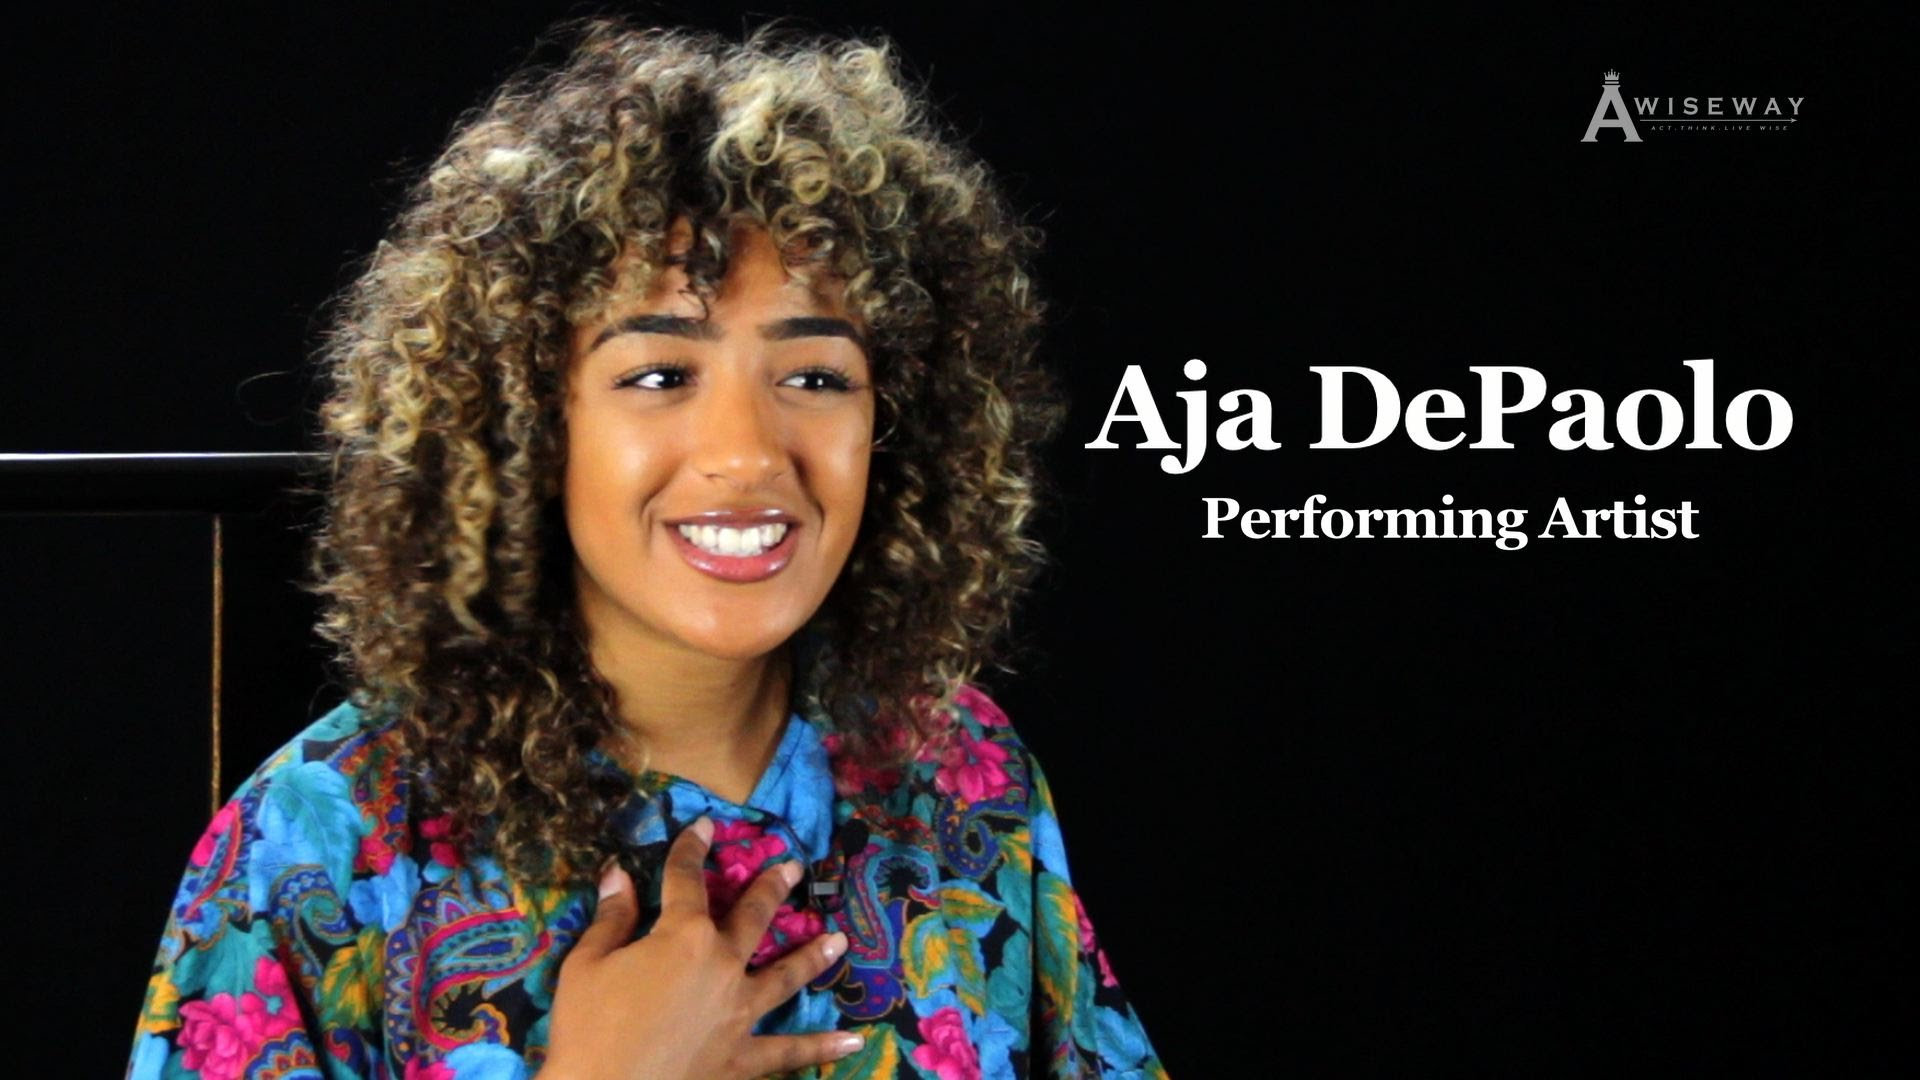 What Do I Need To Know Before Going on Tour as a Performing Artist?